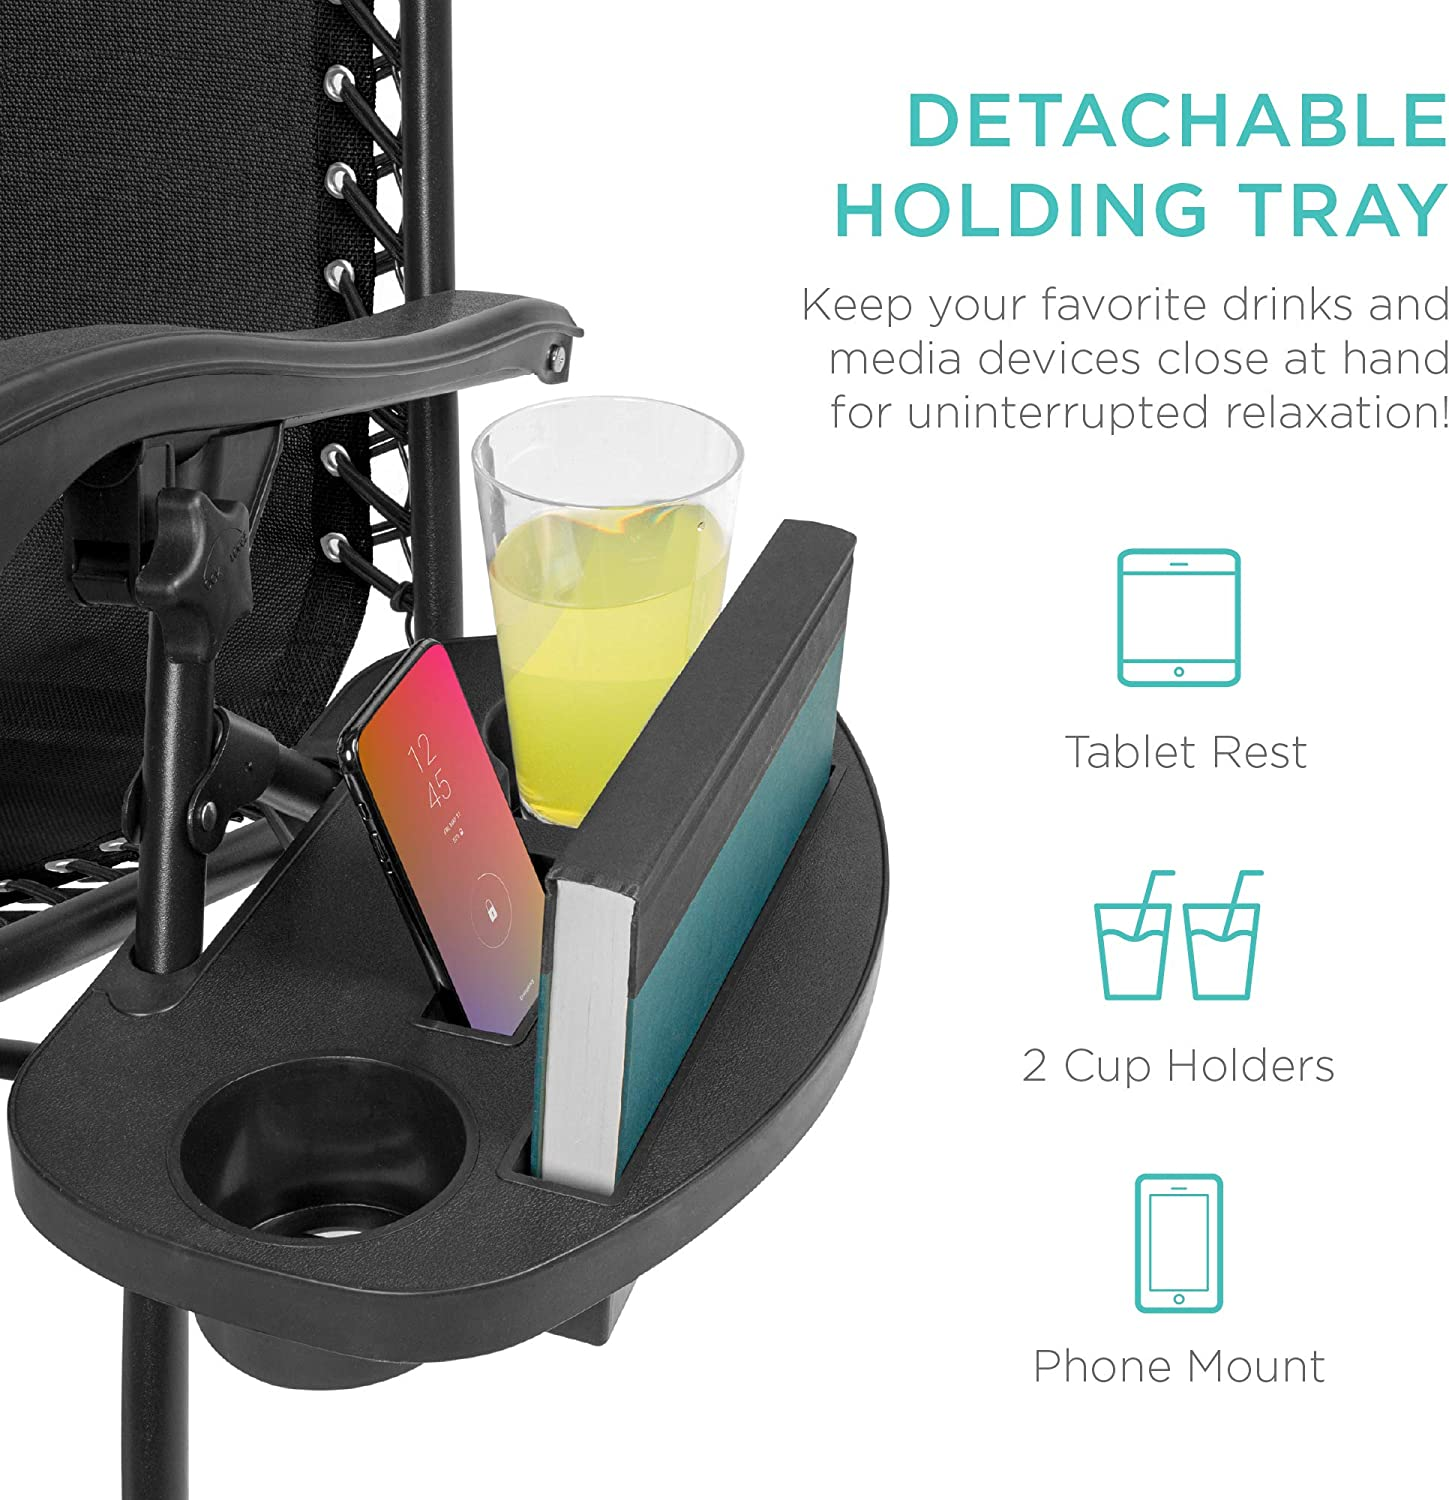 Best Choice Products Zero Gravity Chair detachable holding tray